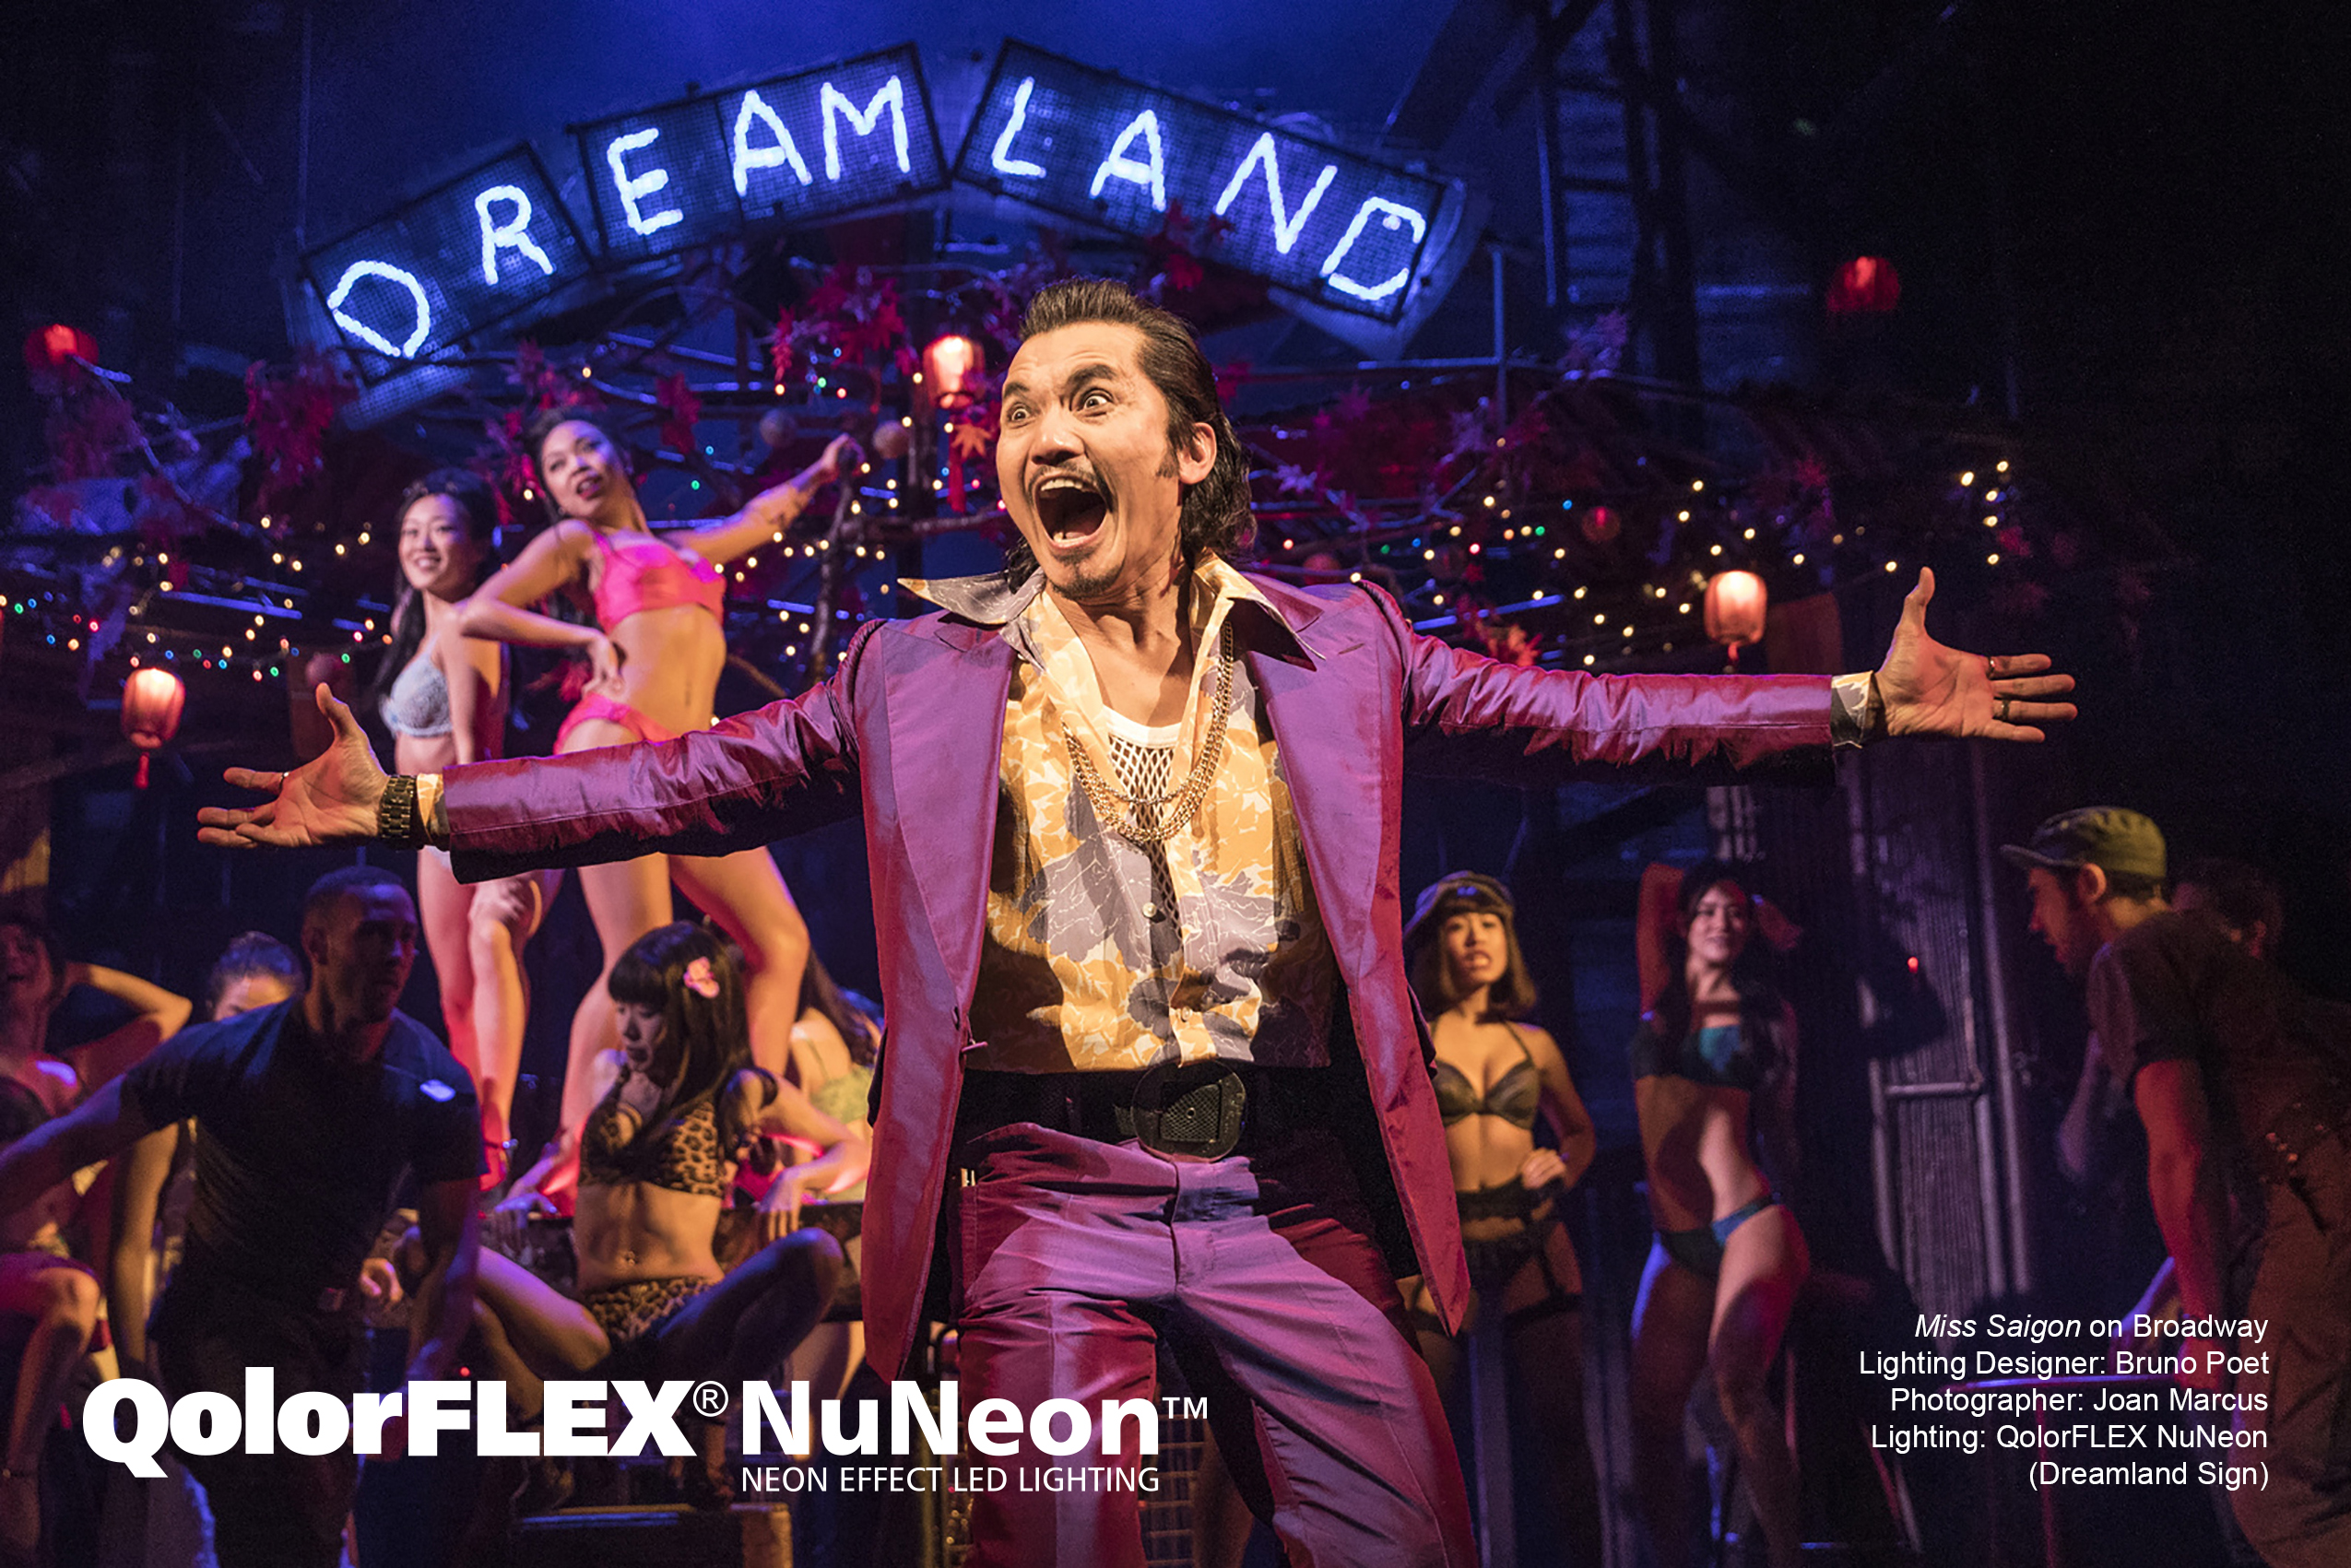 QolorFLEX NuNeon in Miss Saigon on Broadway